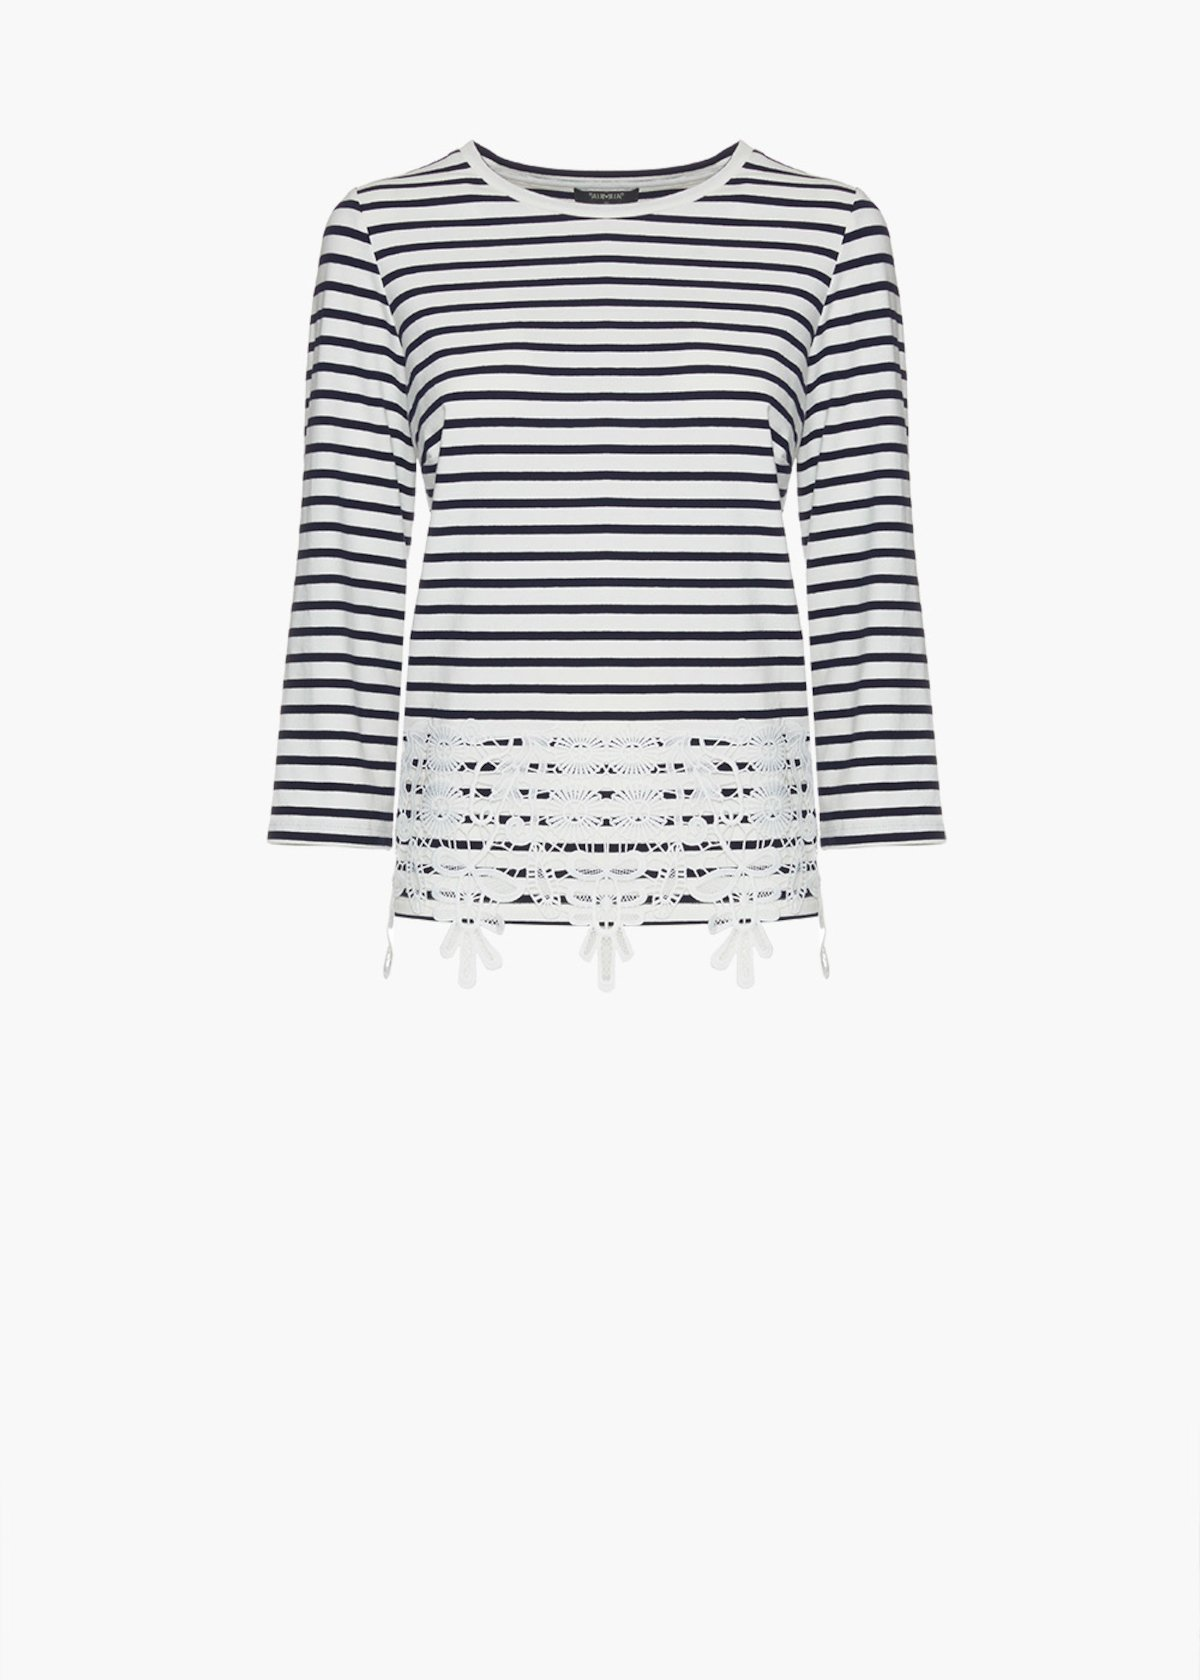 Shelby stripes fantasy t-shirt with lace detail on the bottom - Blue / White Stripes - Woman